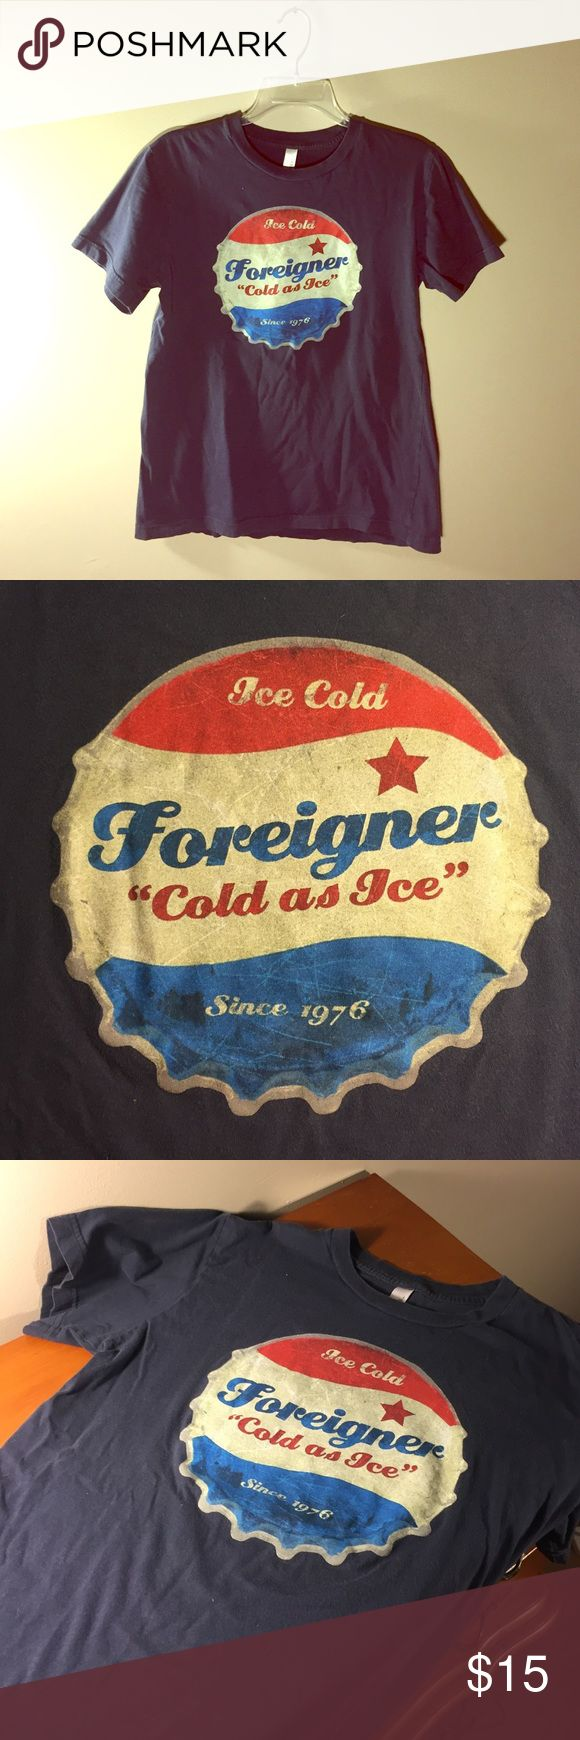 2014 Foreigner Concert T-shirt A t-shirt purchased from a Foreigner concert in 2014. WARNING: shirt runs kinda small imo so if you're a larger medium I wouldn't risk it :) Shirts Tees - Short Sleeve